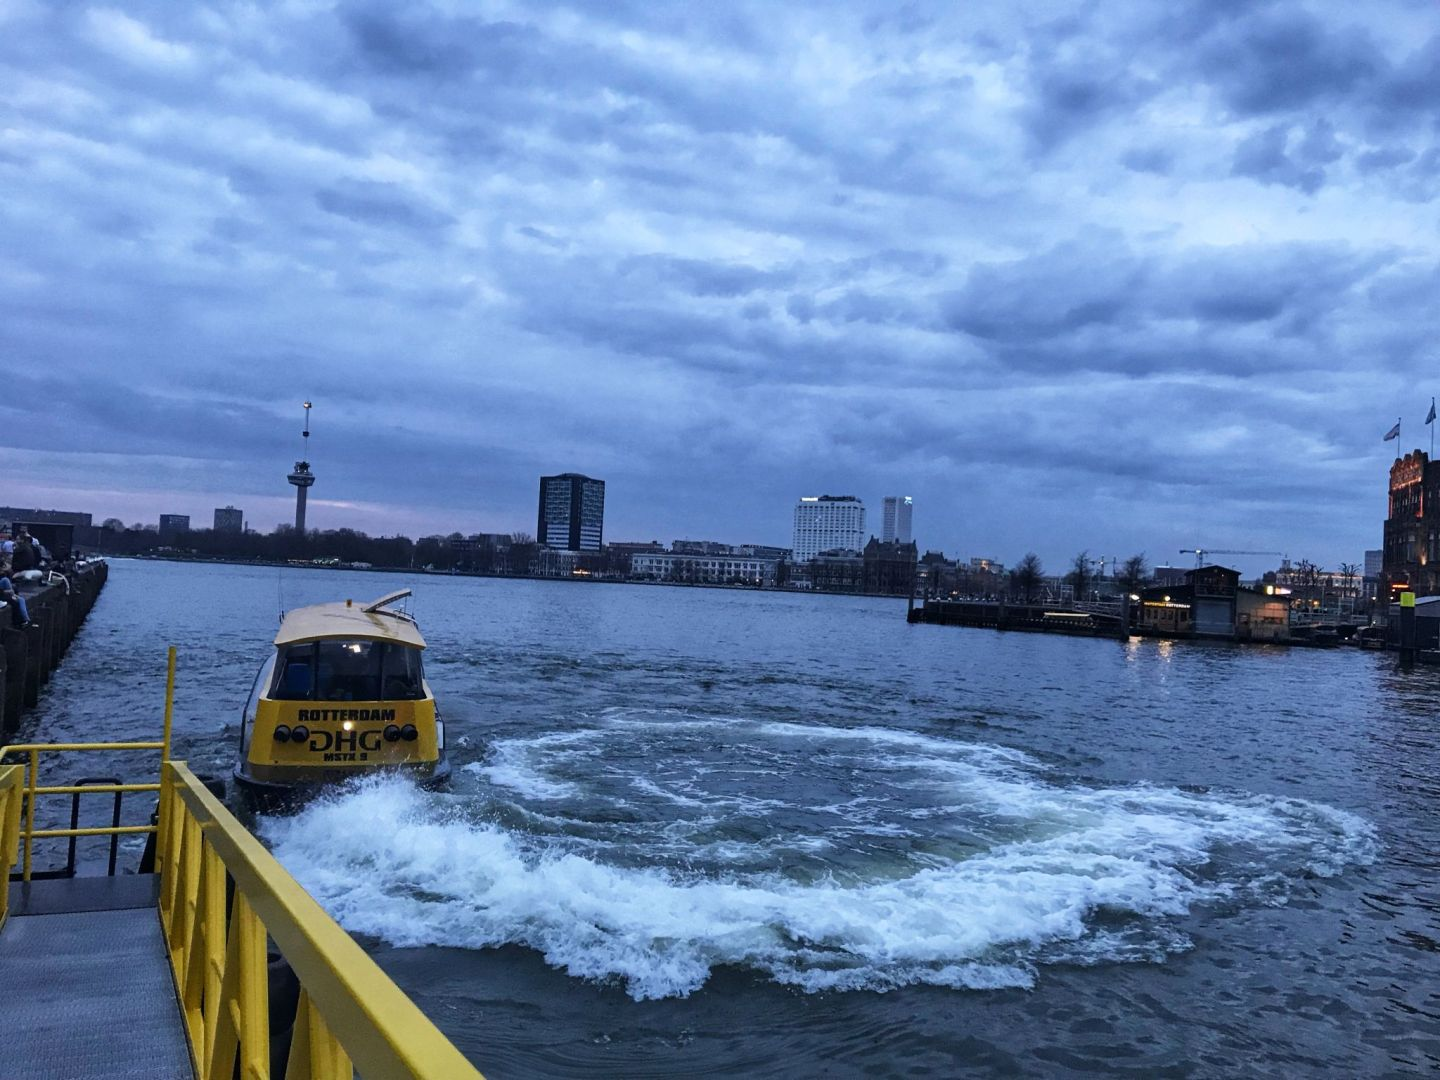 Watertaxi to Fenix Food Factory Rotterdam